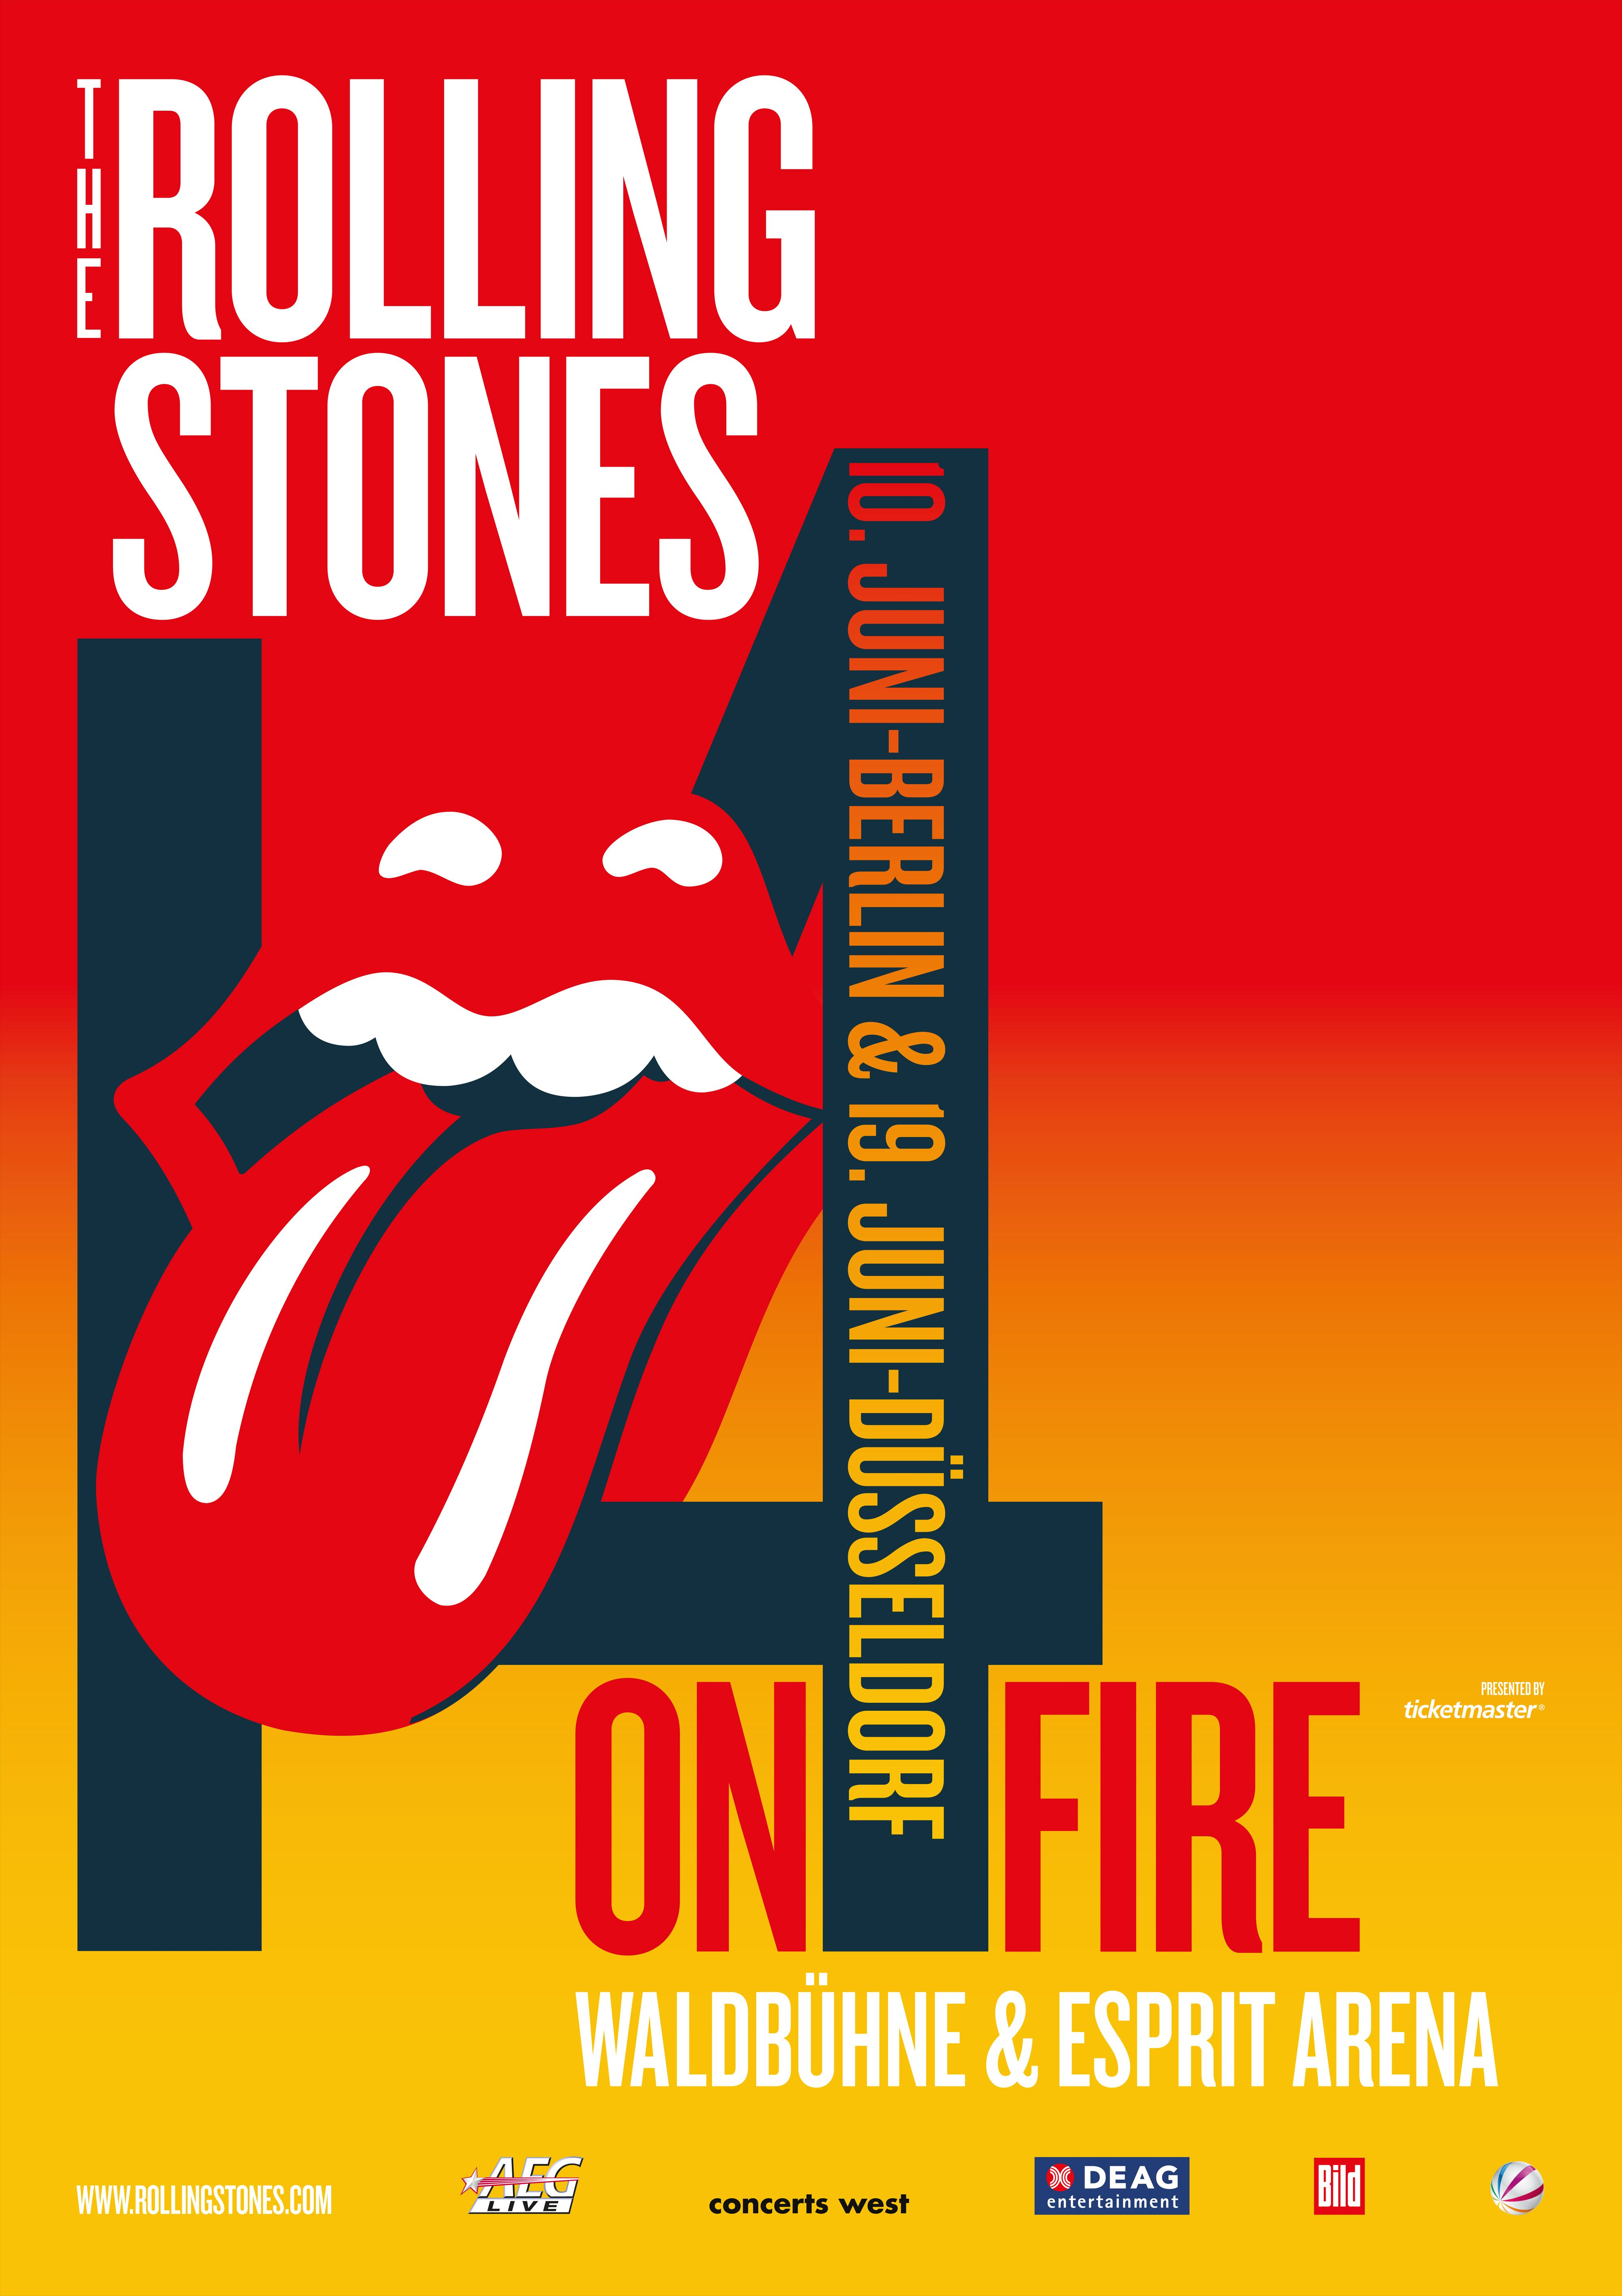 The Rolling Stones On Fire Tour 2014 Poster. Tickets für The Rolling Stones bei Ticketmaster unter http://www.ticketmaster.de/artist/the-rolling-stones-tickets/2139